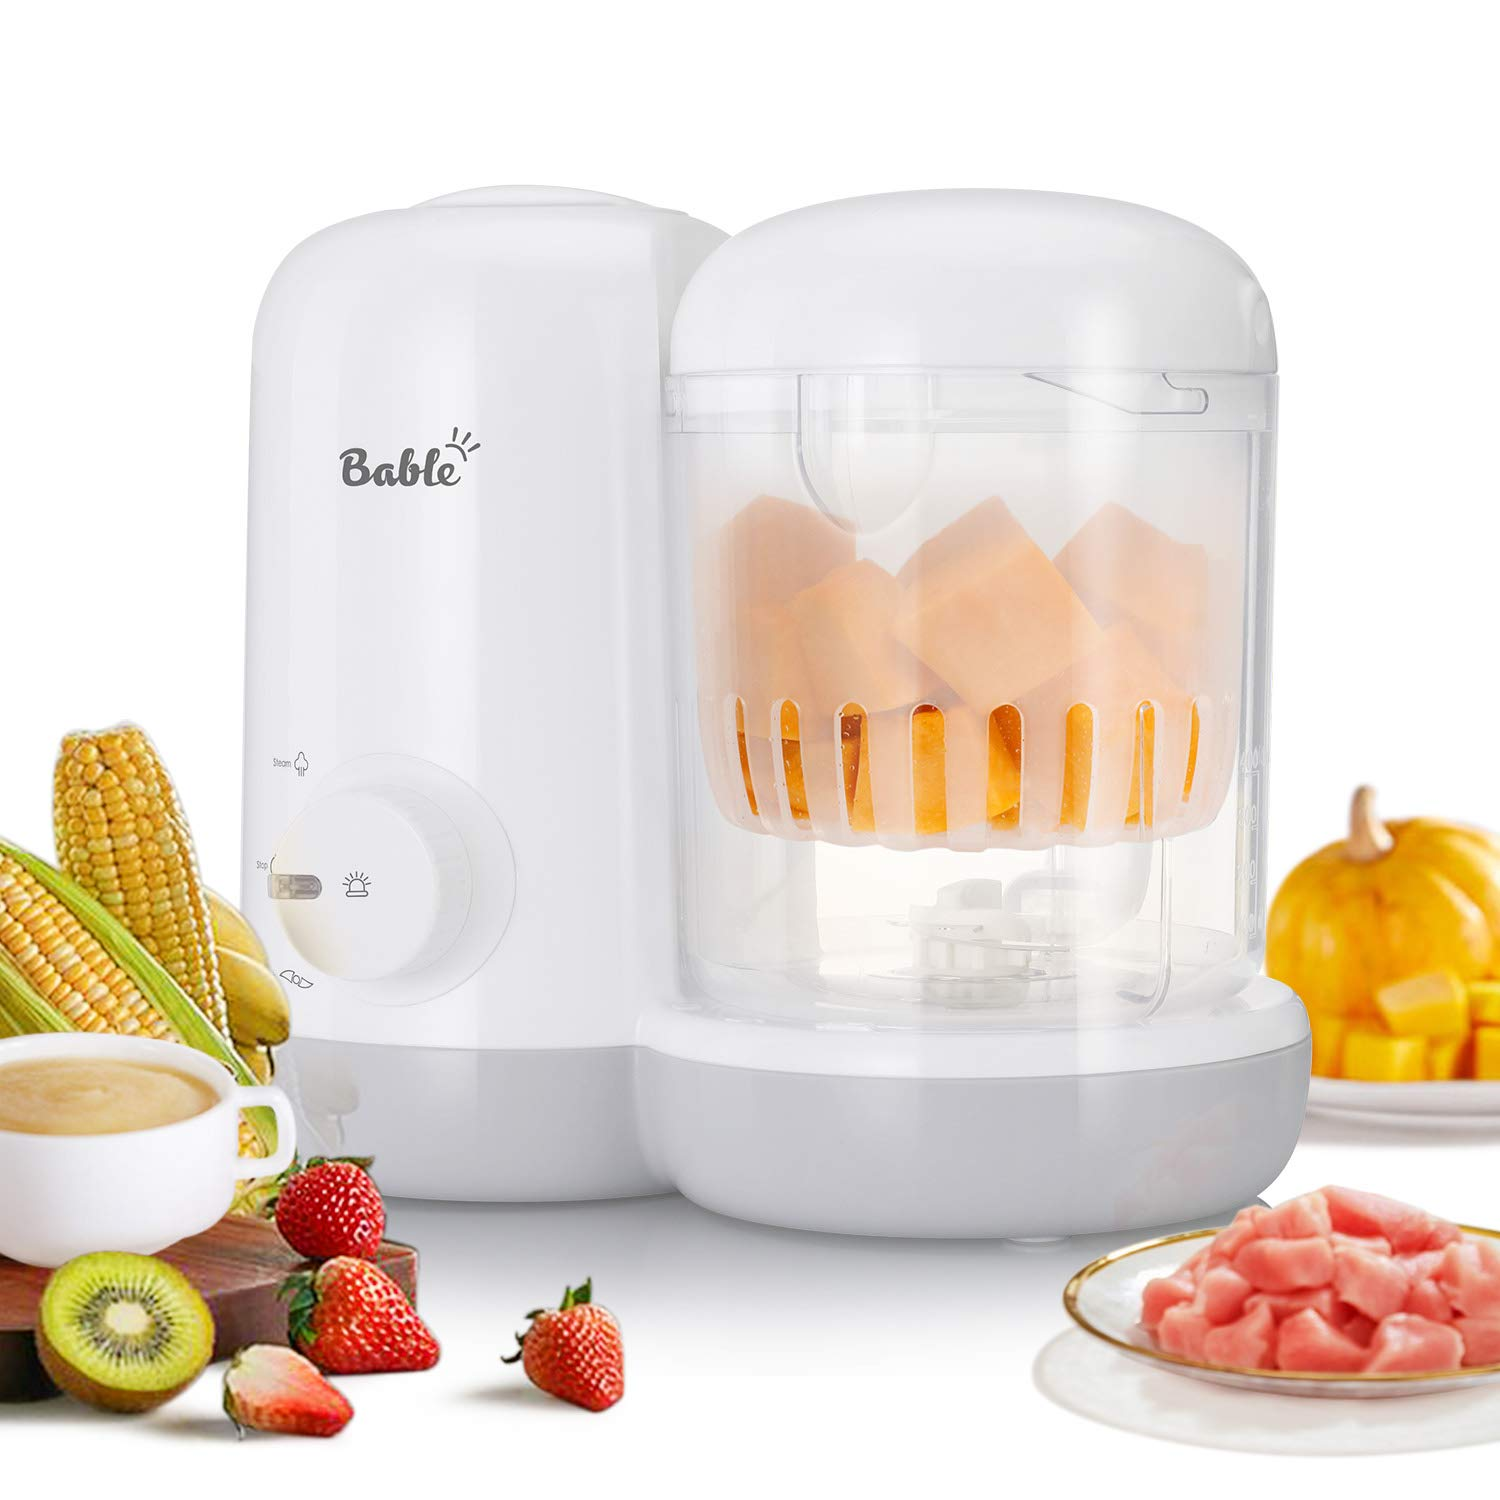 Amazon coupon code for Baby Food Maker Steamer and Blender